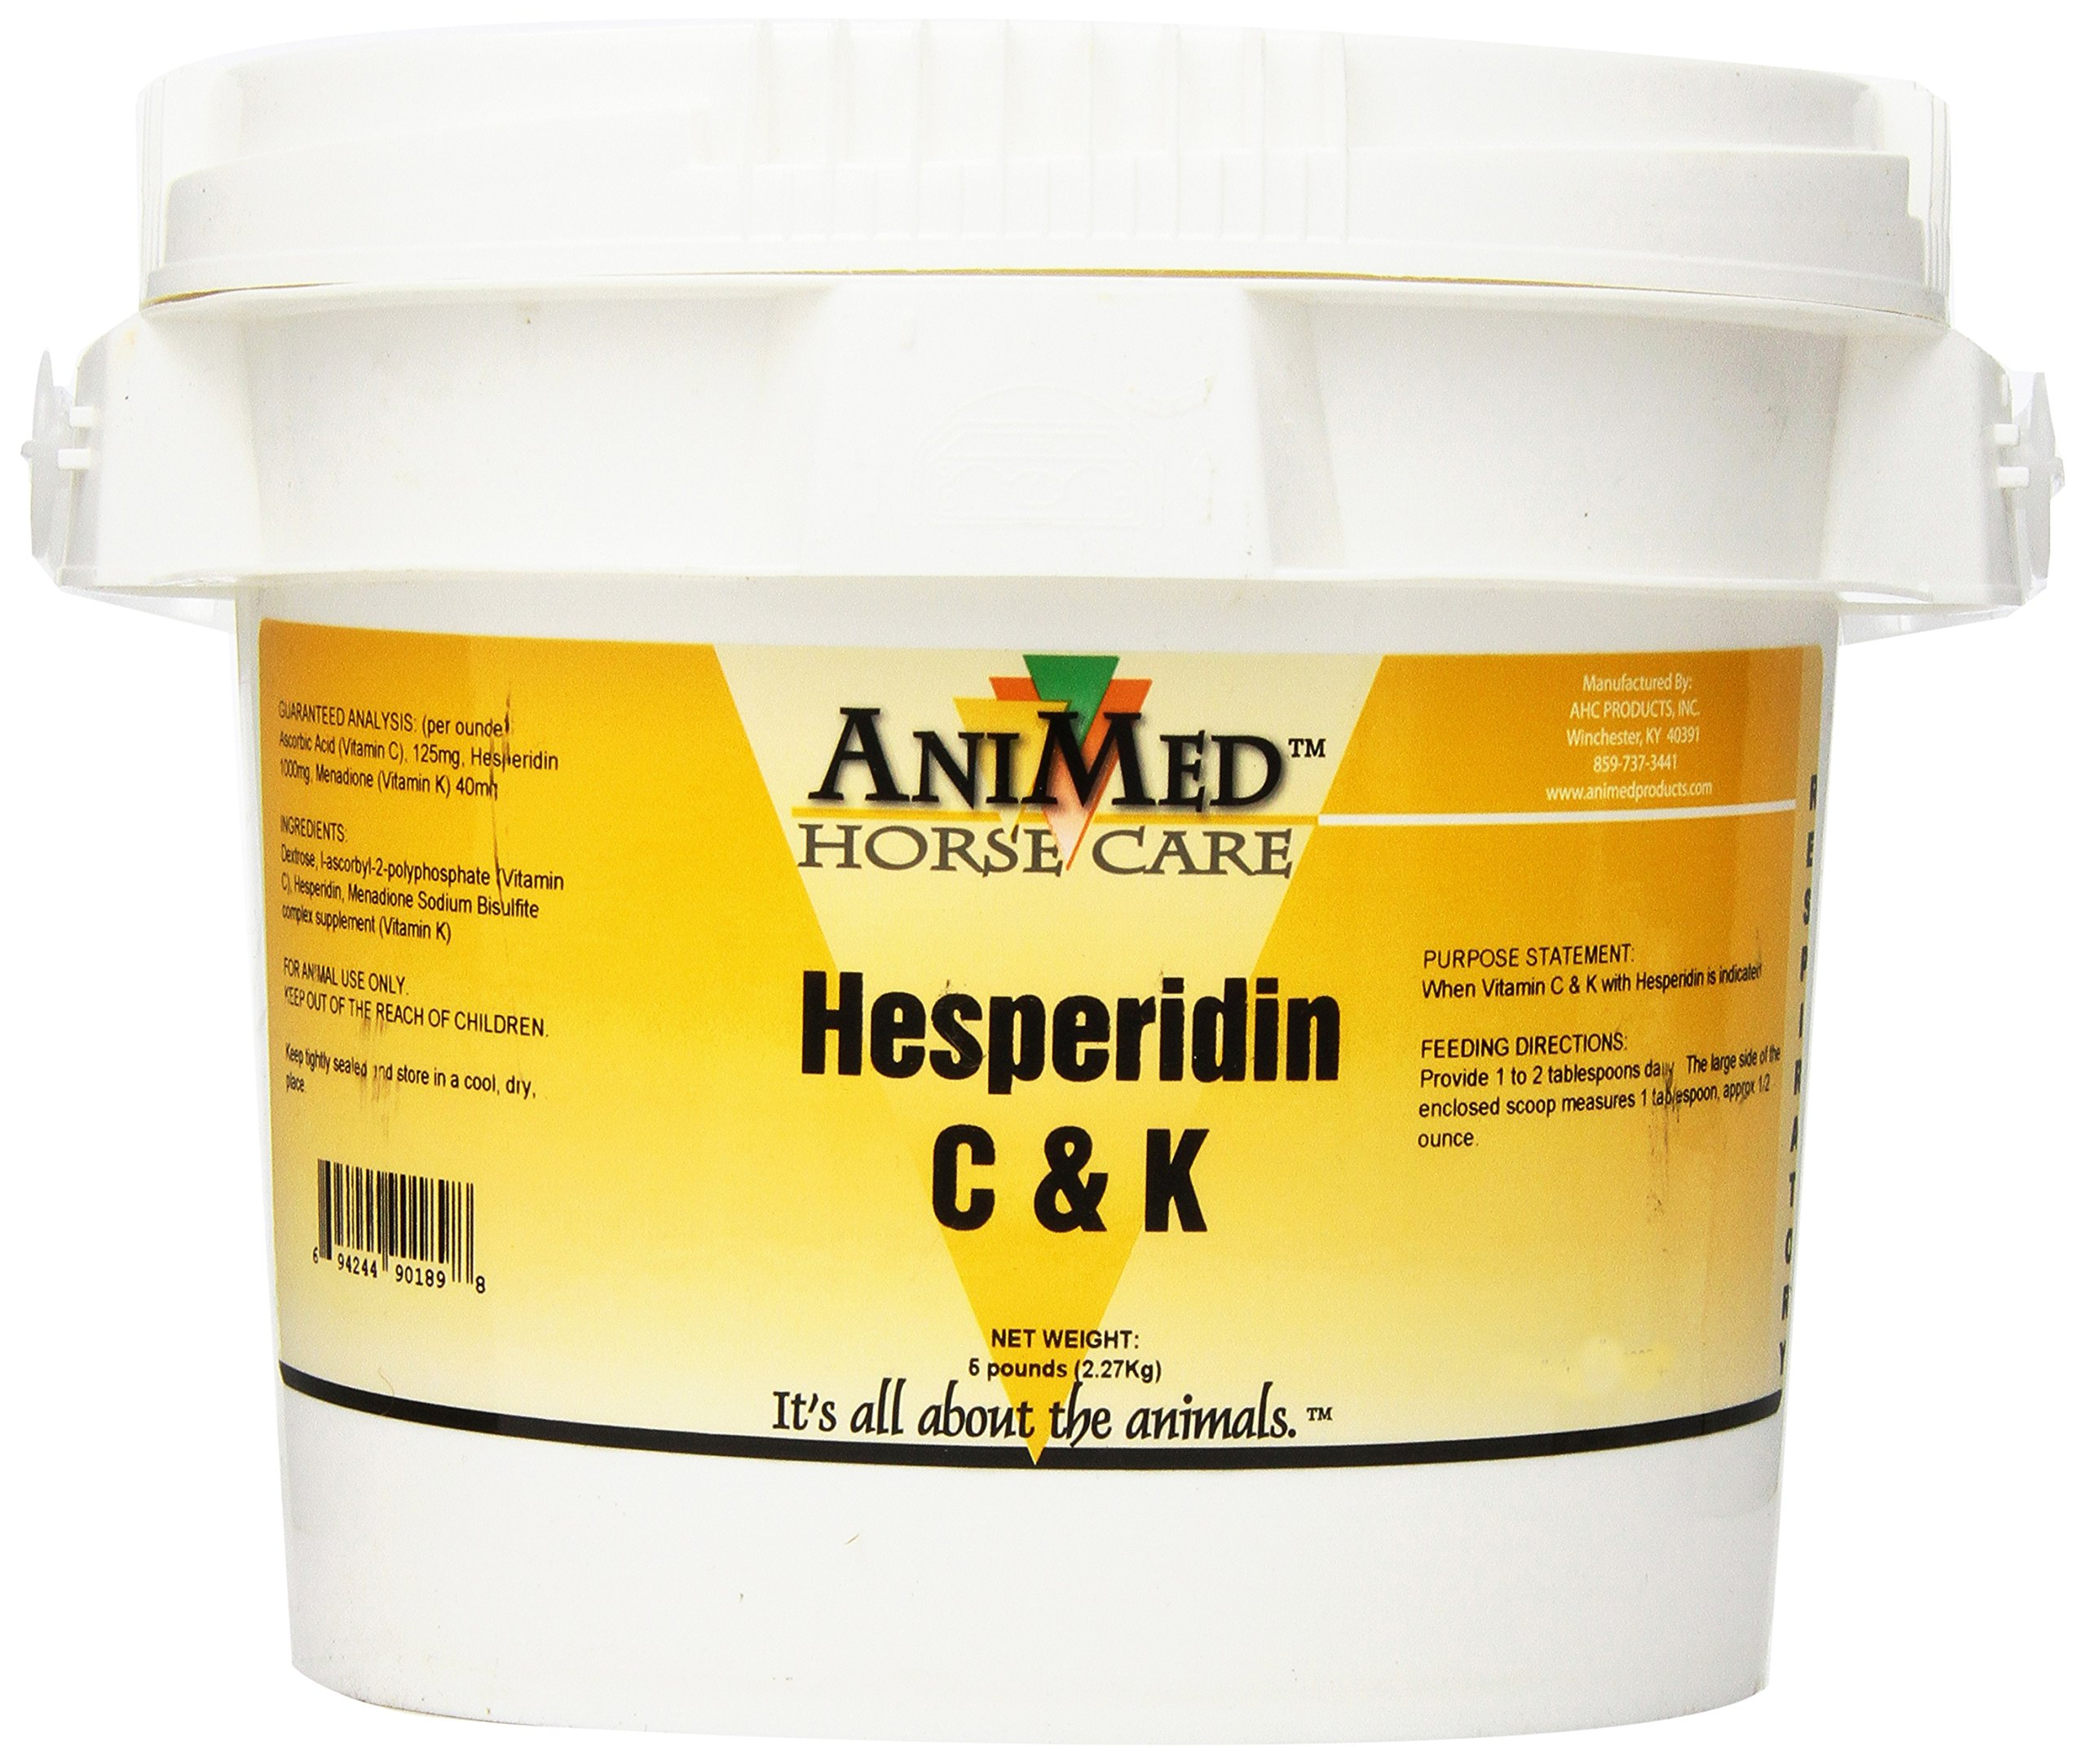 AniMed Vitamin C and K with Hesperidin Supplement for Horses, 5-Pound by AniMed